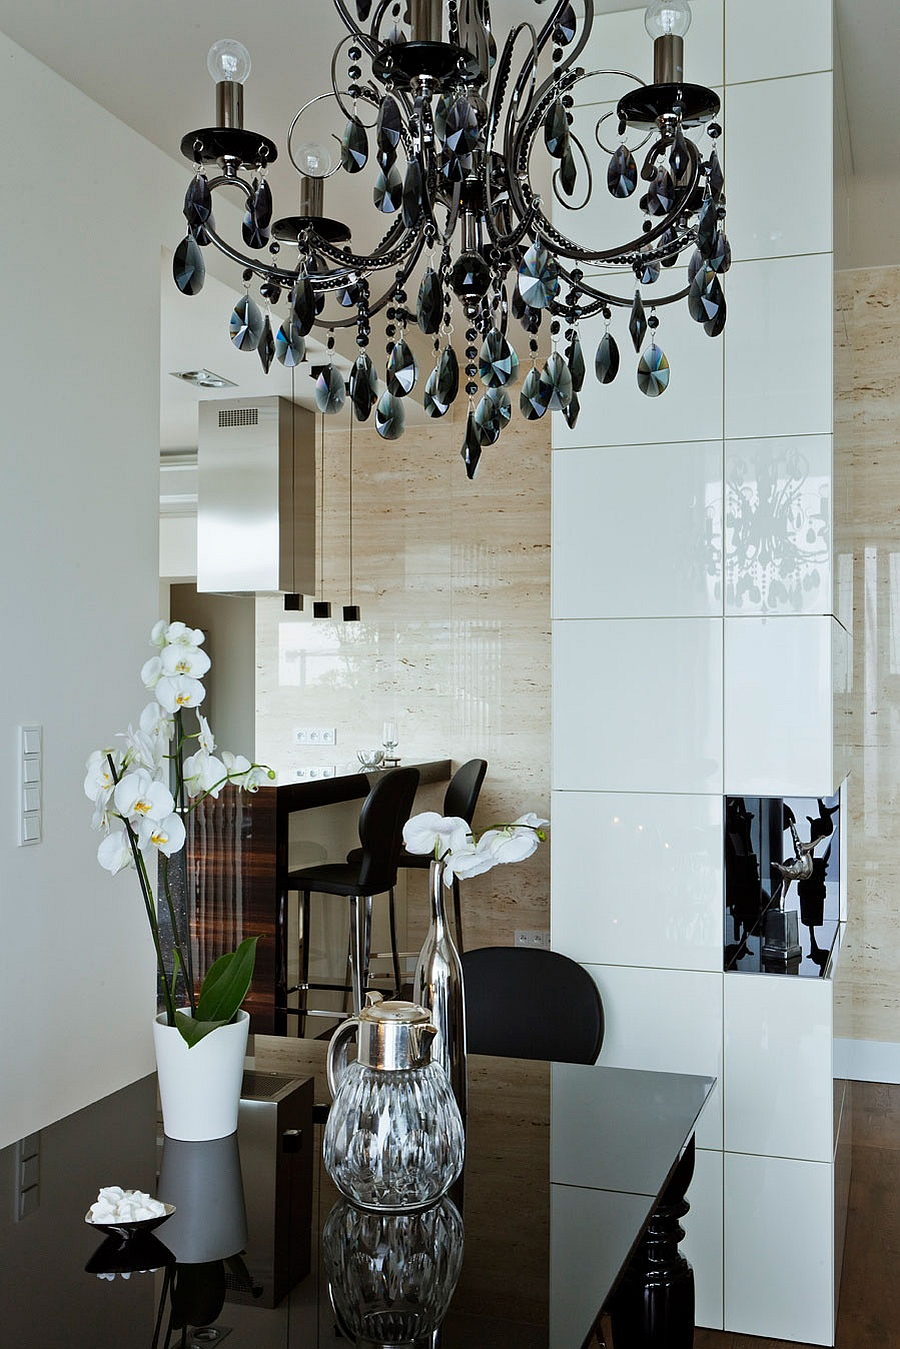 Gorgeous chandelier in black steals the show inside the sophisticated space